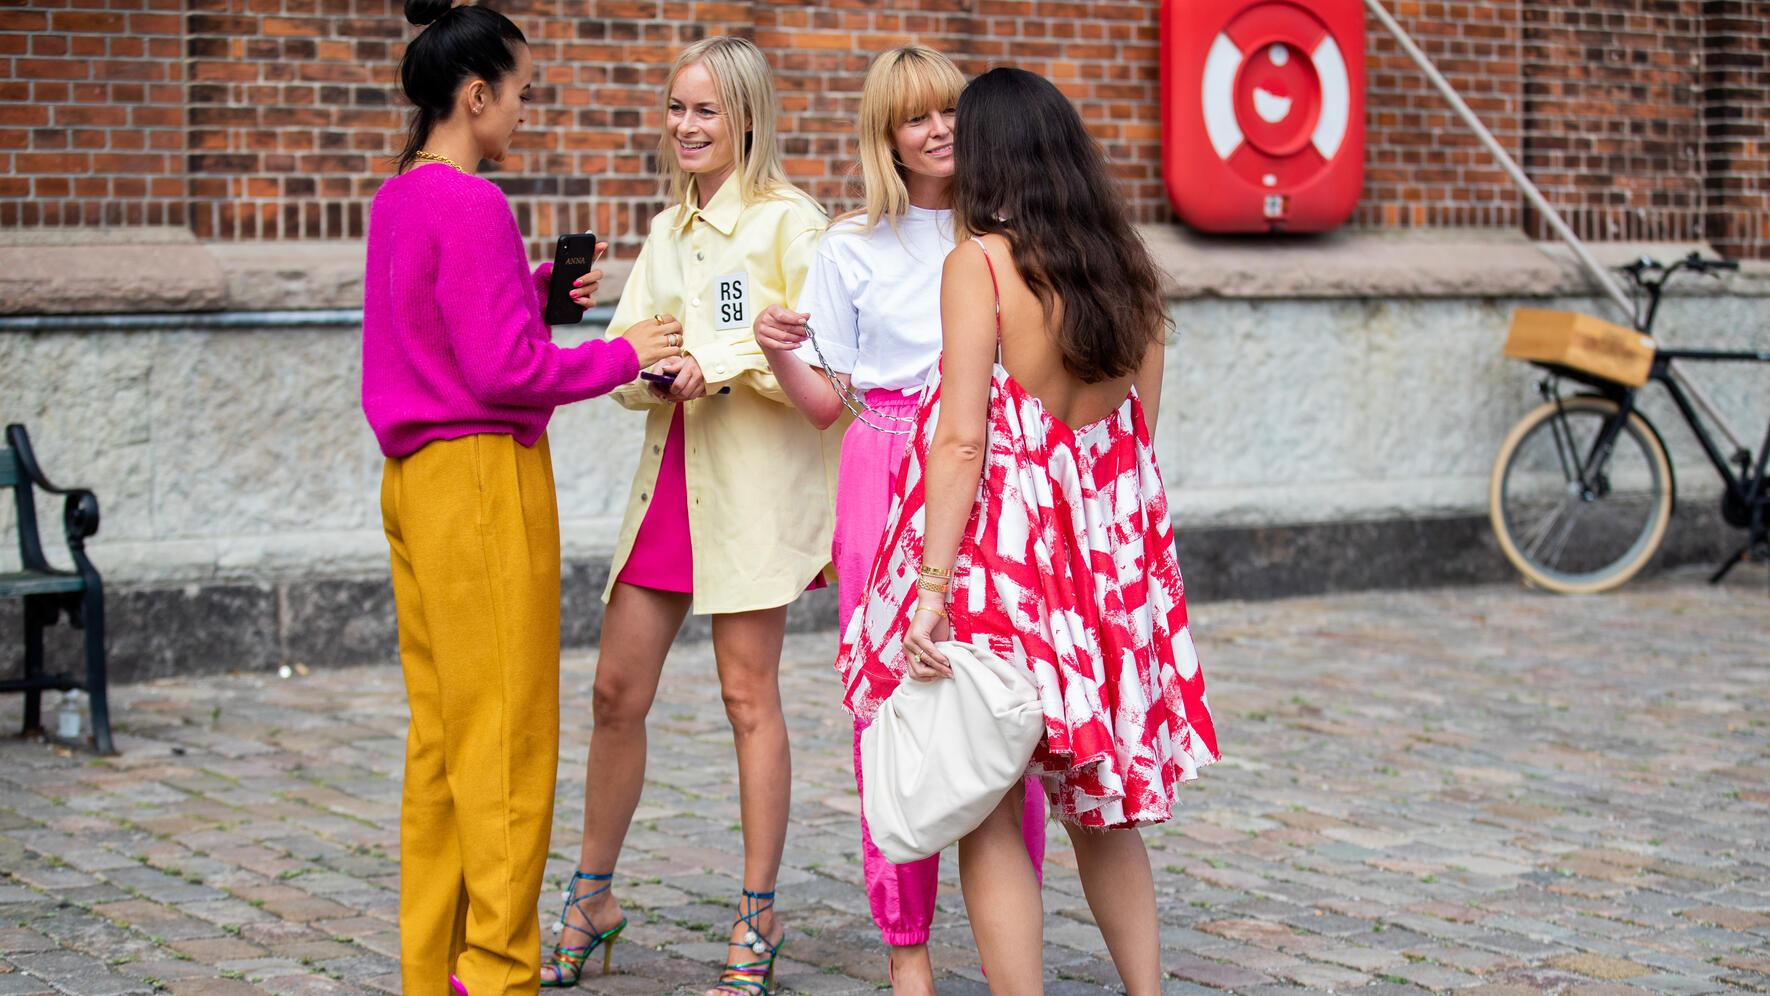 COPENHAGEN, DENMARK - AUGUST 07: Guests seen outside Rodebjer during Copenhagen Fashion Week Spring/Summer 2020 on August 07, 2019 in Copenhagen, Denmark. (Photo by Christian Vierig/Getty Images)